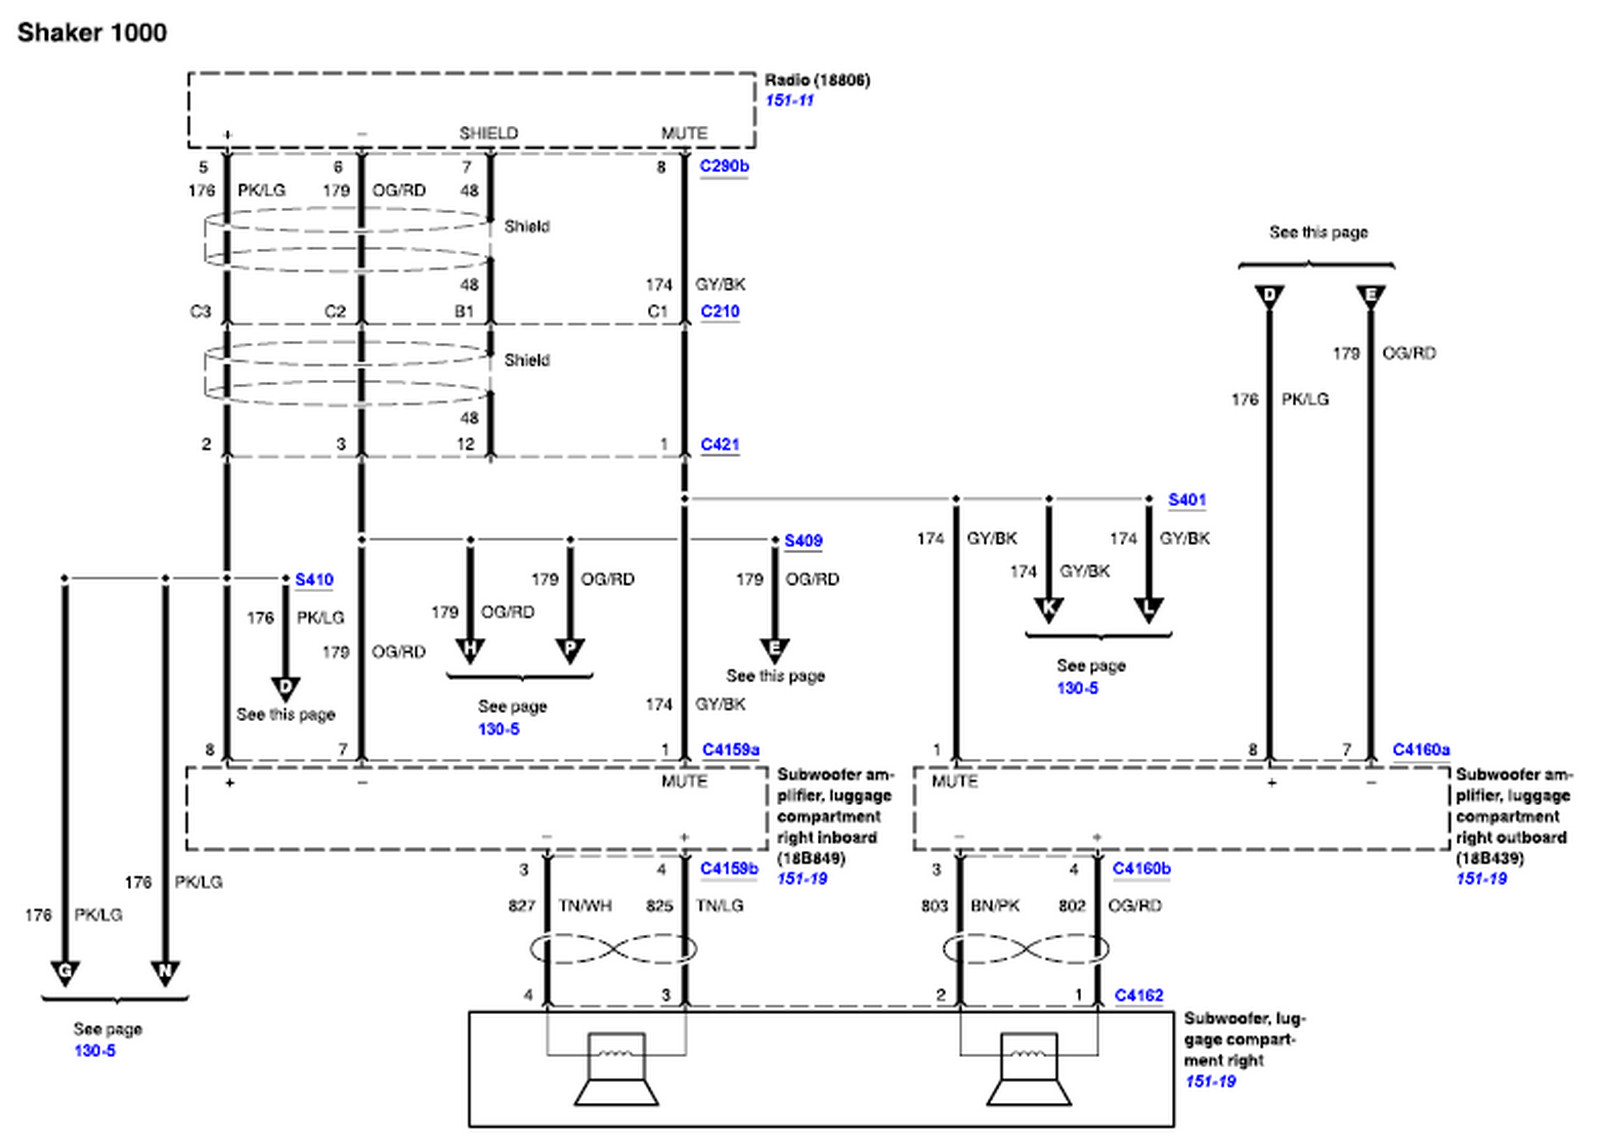 need a diagram of a shaker 500 audio system color codes for graphic